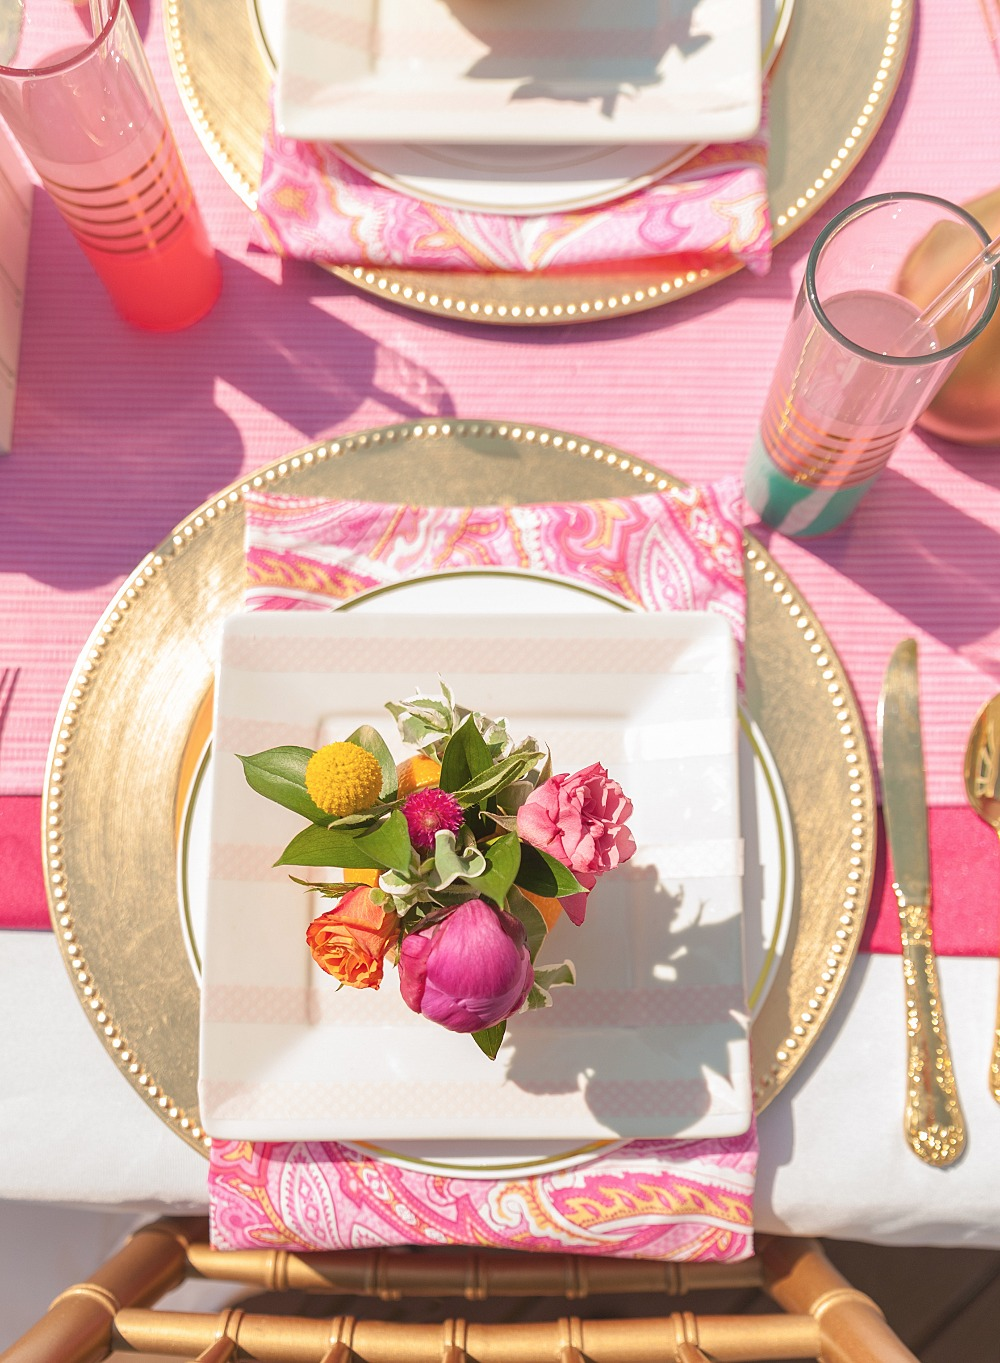 Fresh bridal shower place setting idea with gold details